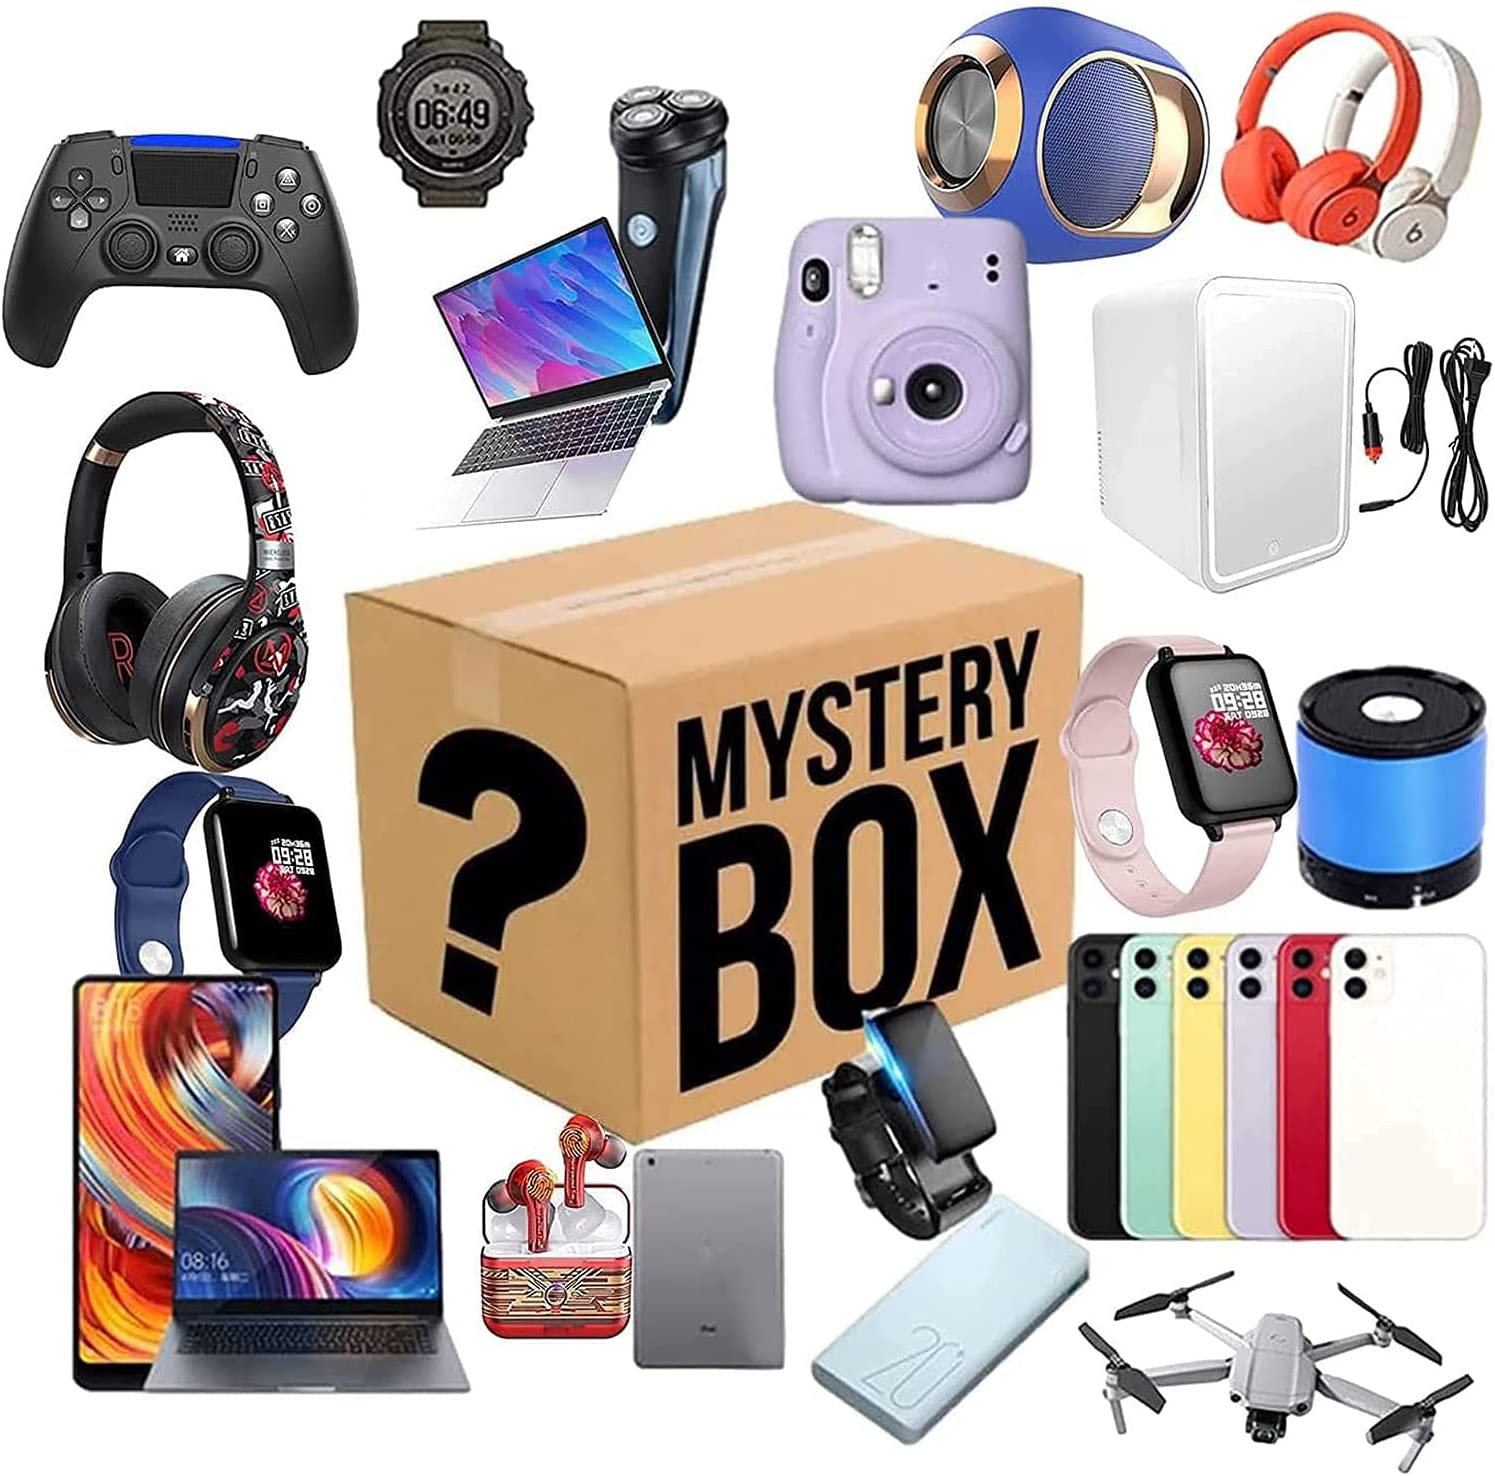 Mystery Box Electronic Lucky Boxes Blind Coste Animer and price revision Super Colorado Springs Mall